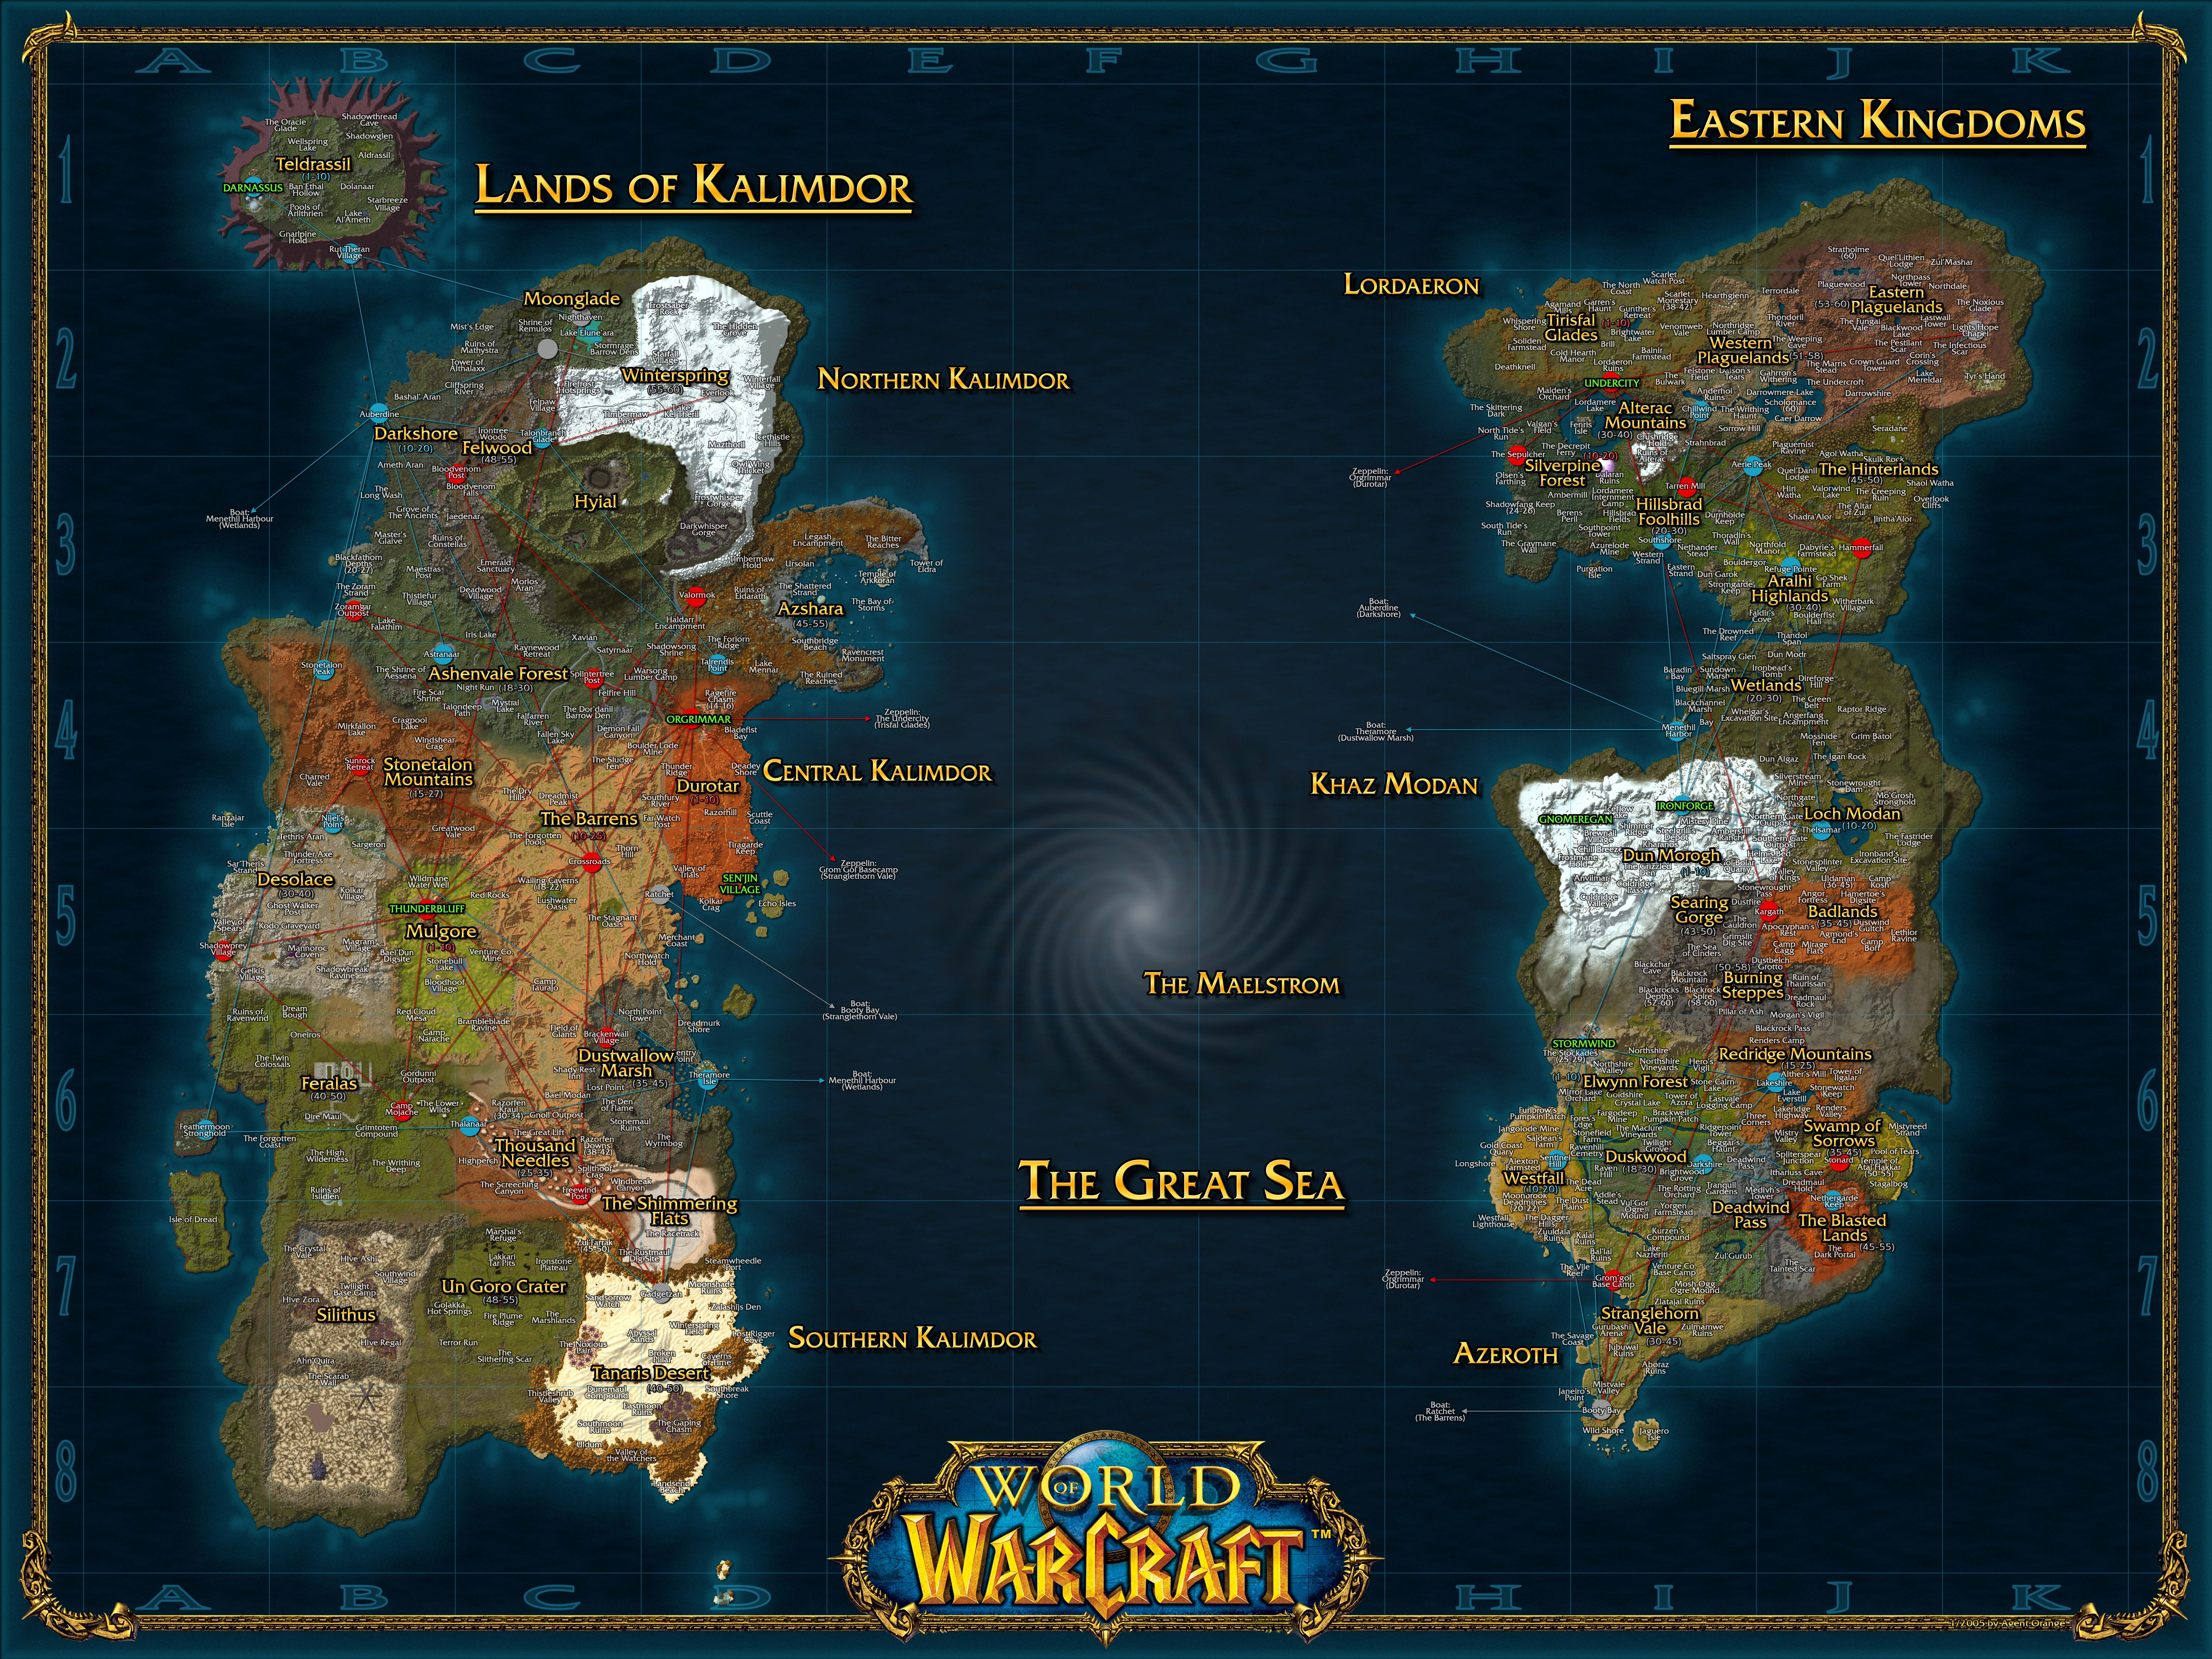 The Best Classic WoW Map I've been able to find : classicwow